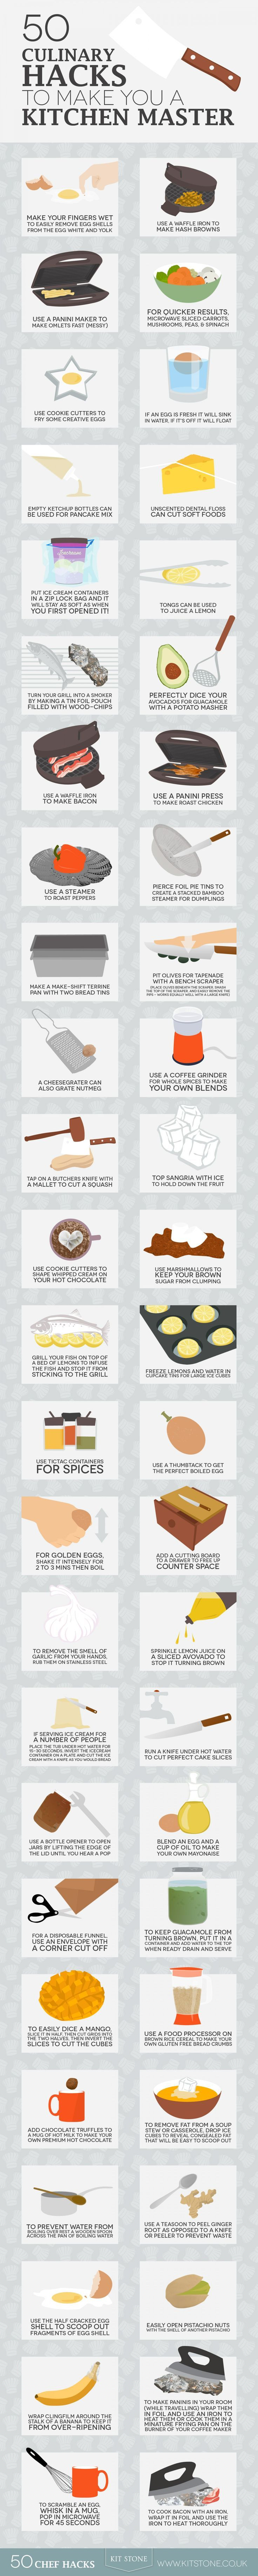 50 culinary hacks that will change your life